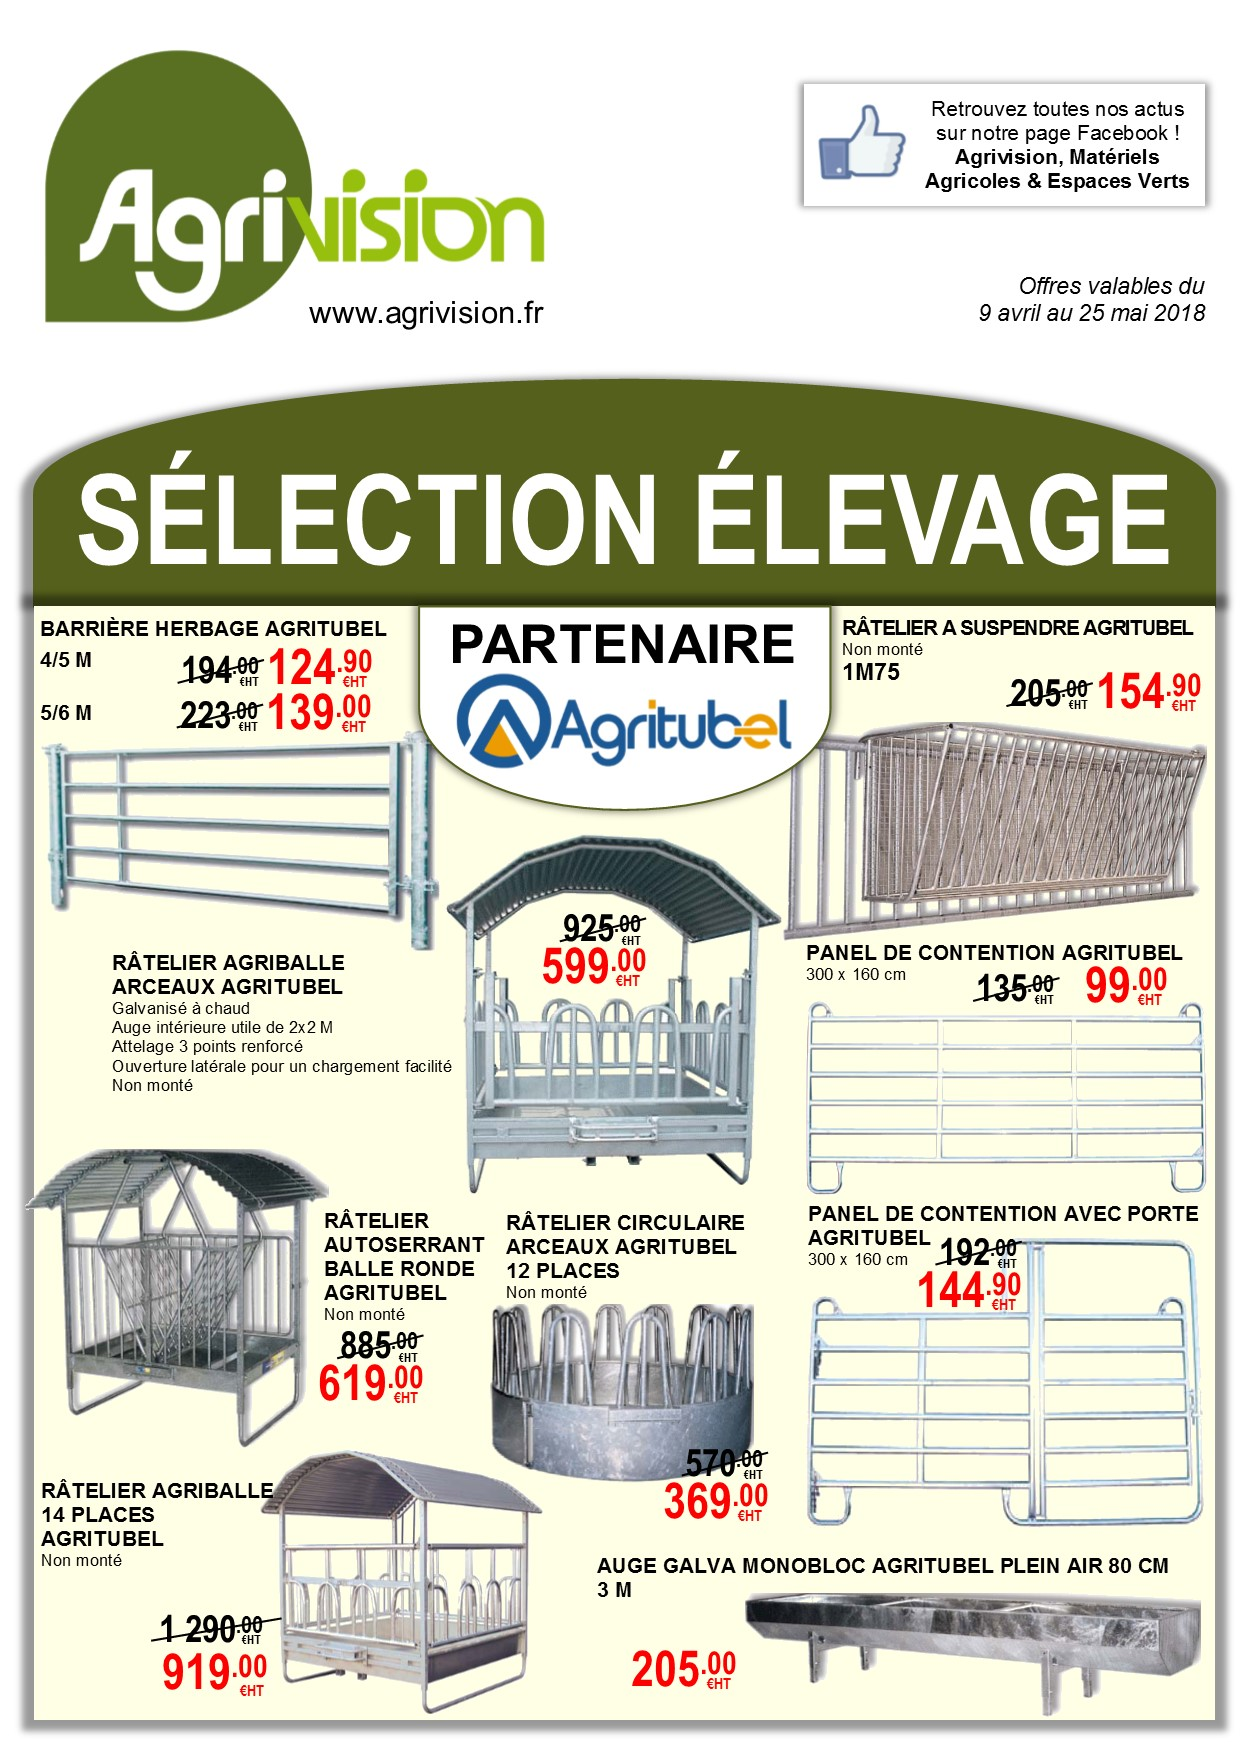 SELECTION ELEVAGE